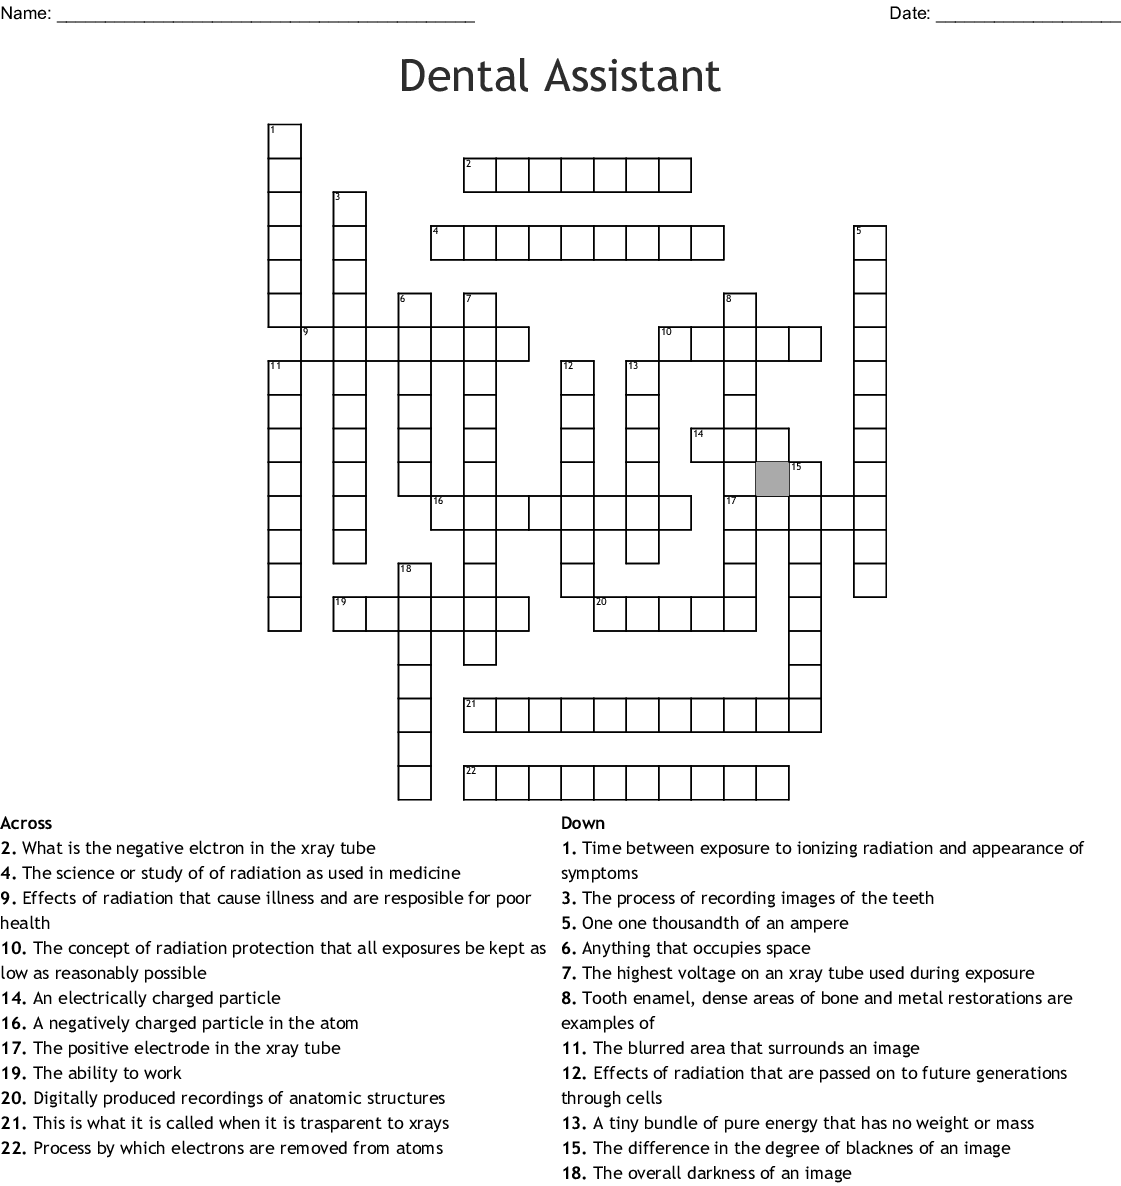 Dental Assistant Crossword